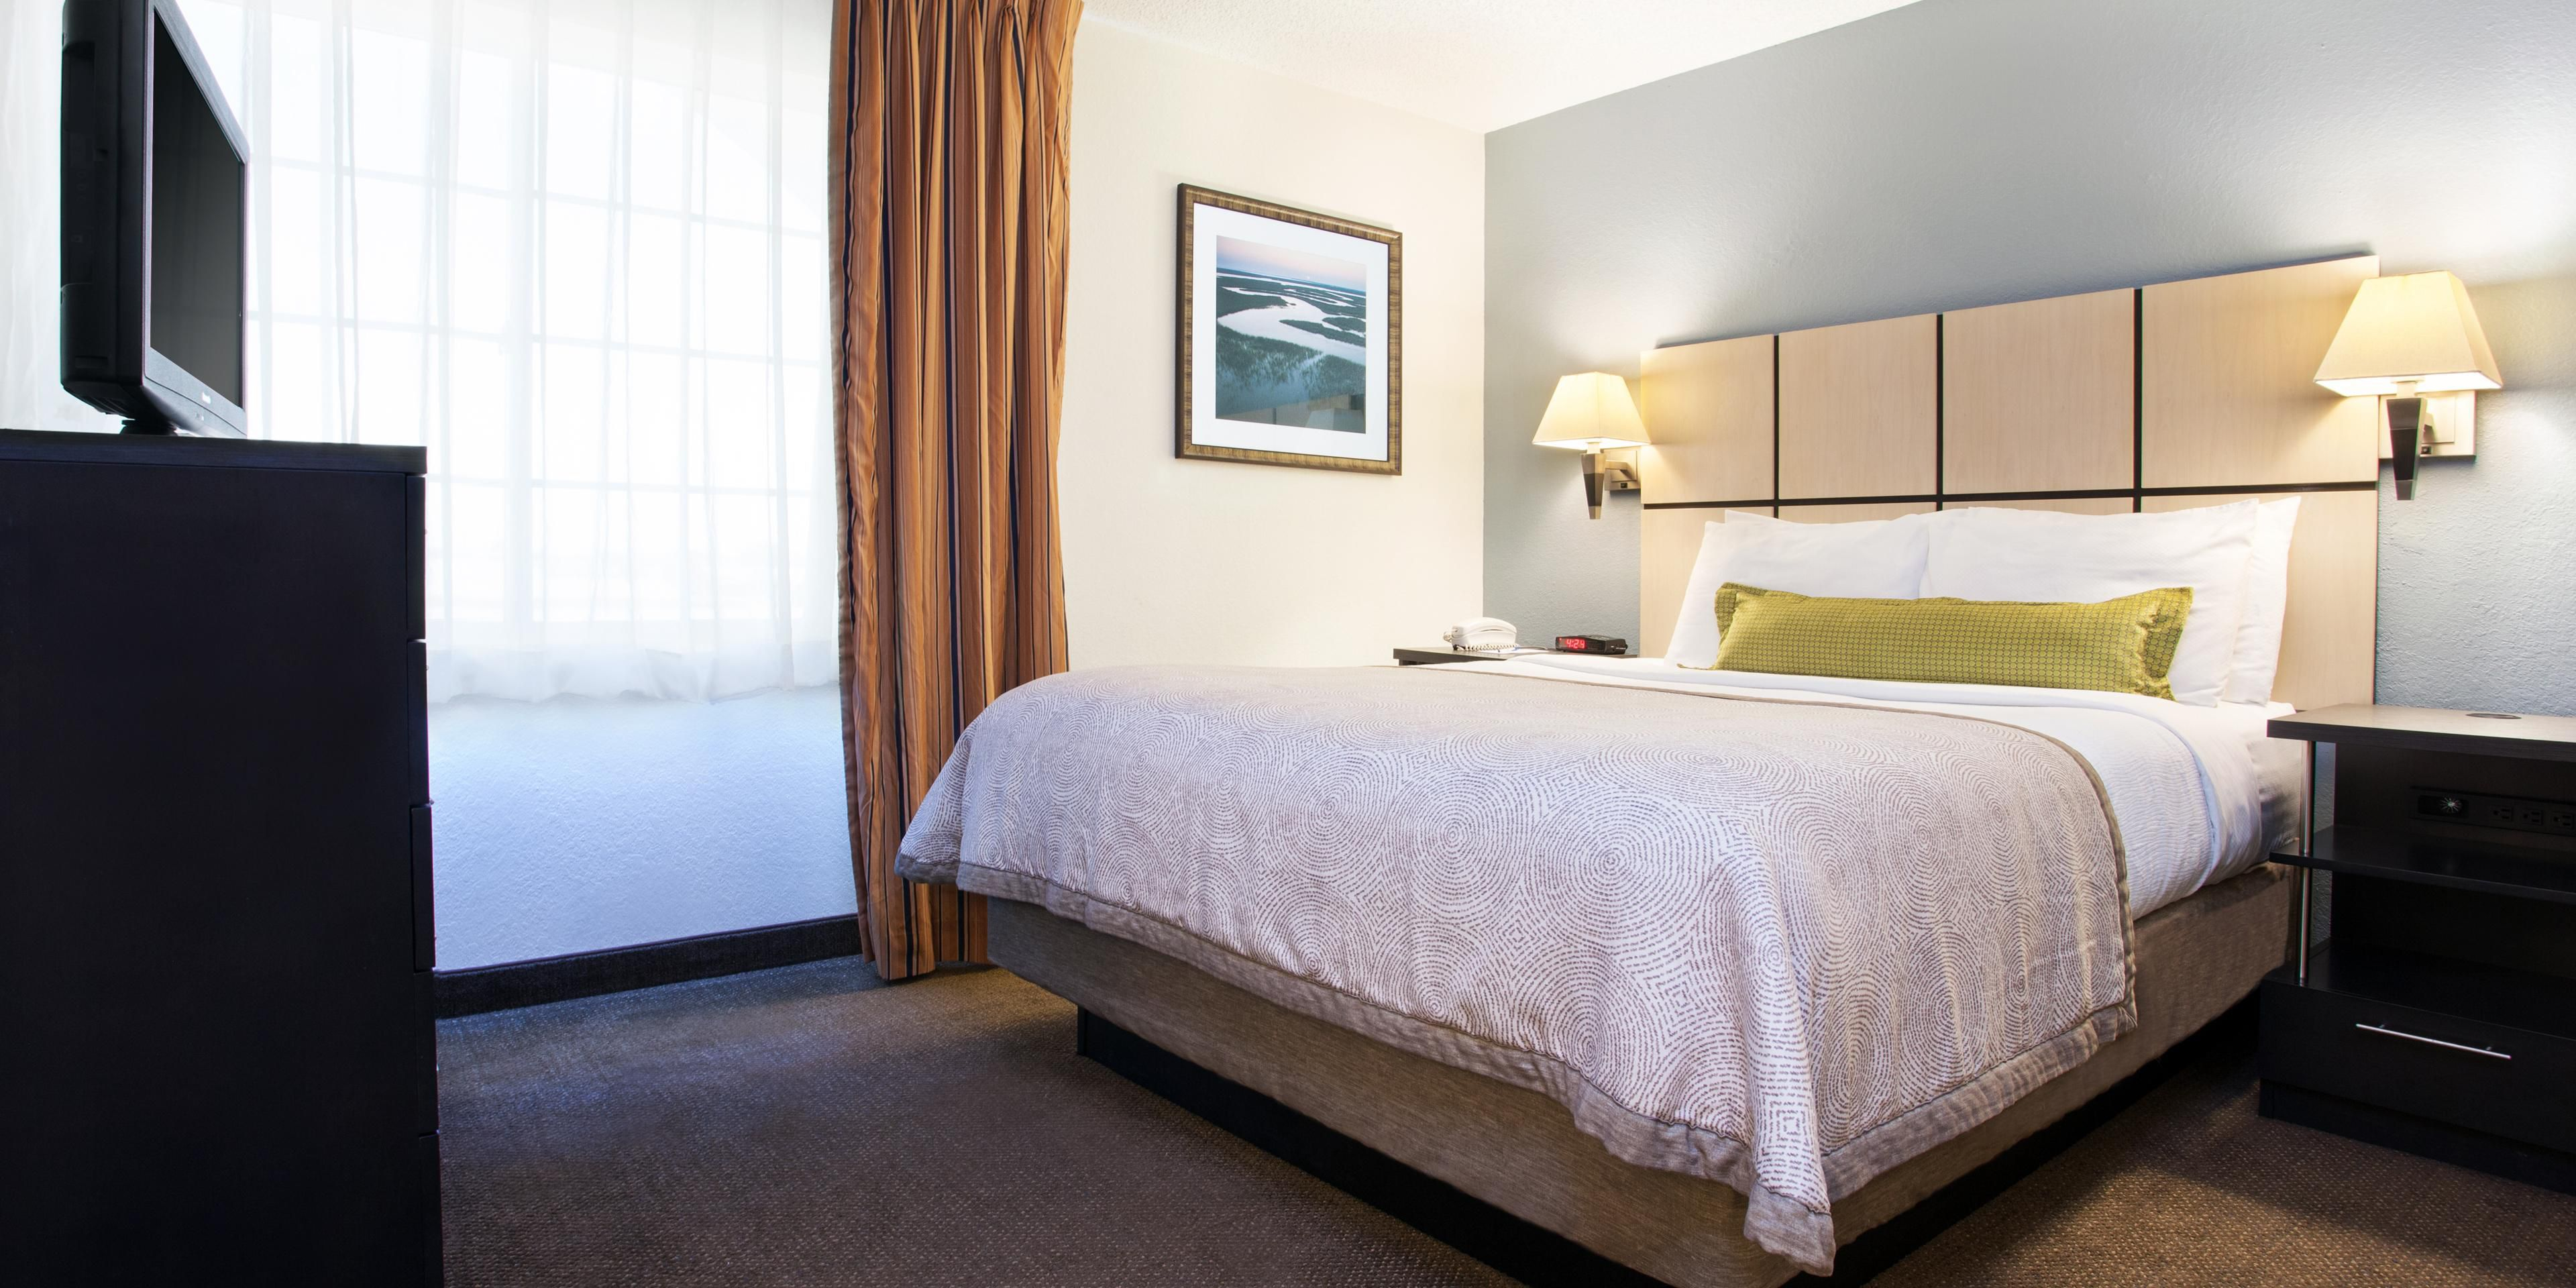 Extended Stay Hotels In Clearwater, FL   Candlewood Suites